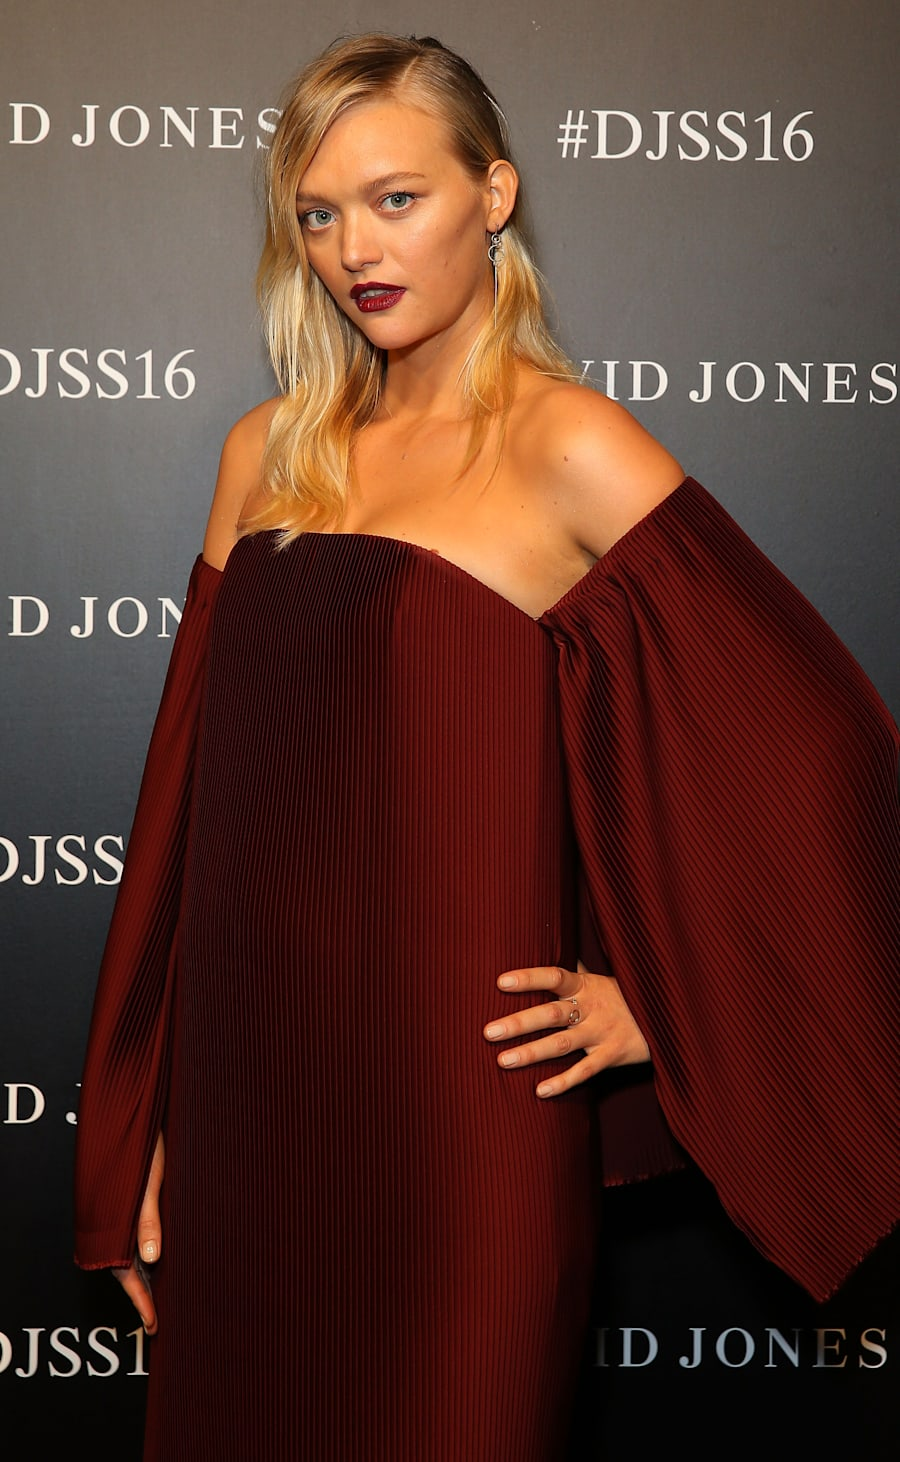 Gemma Ward on the red carpet prior to the